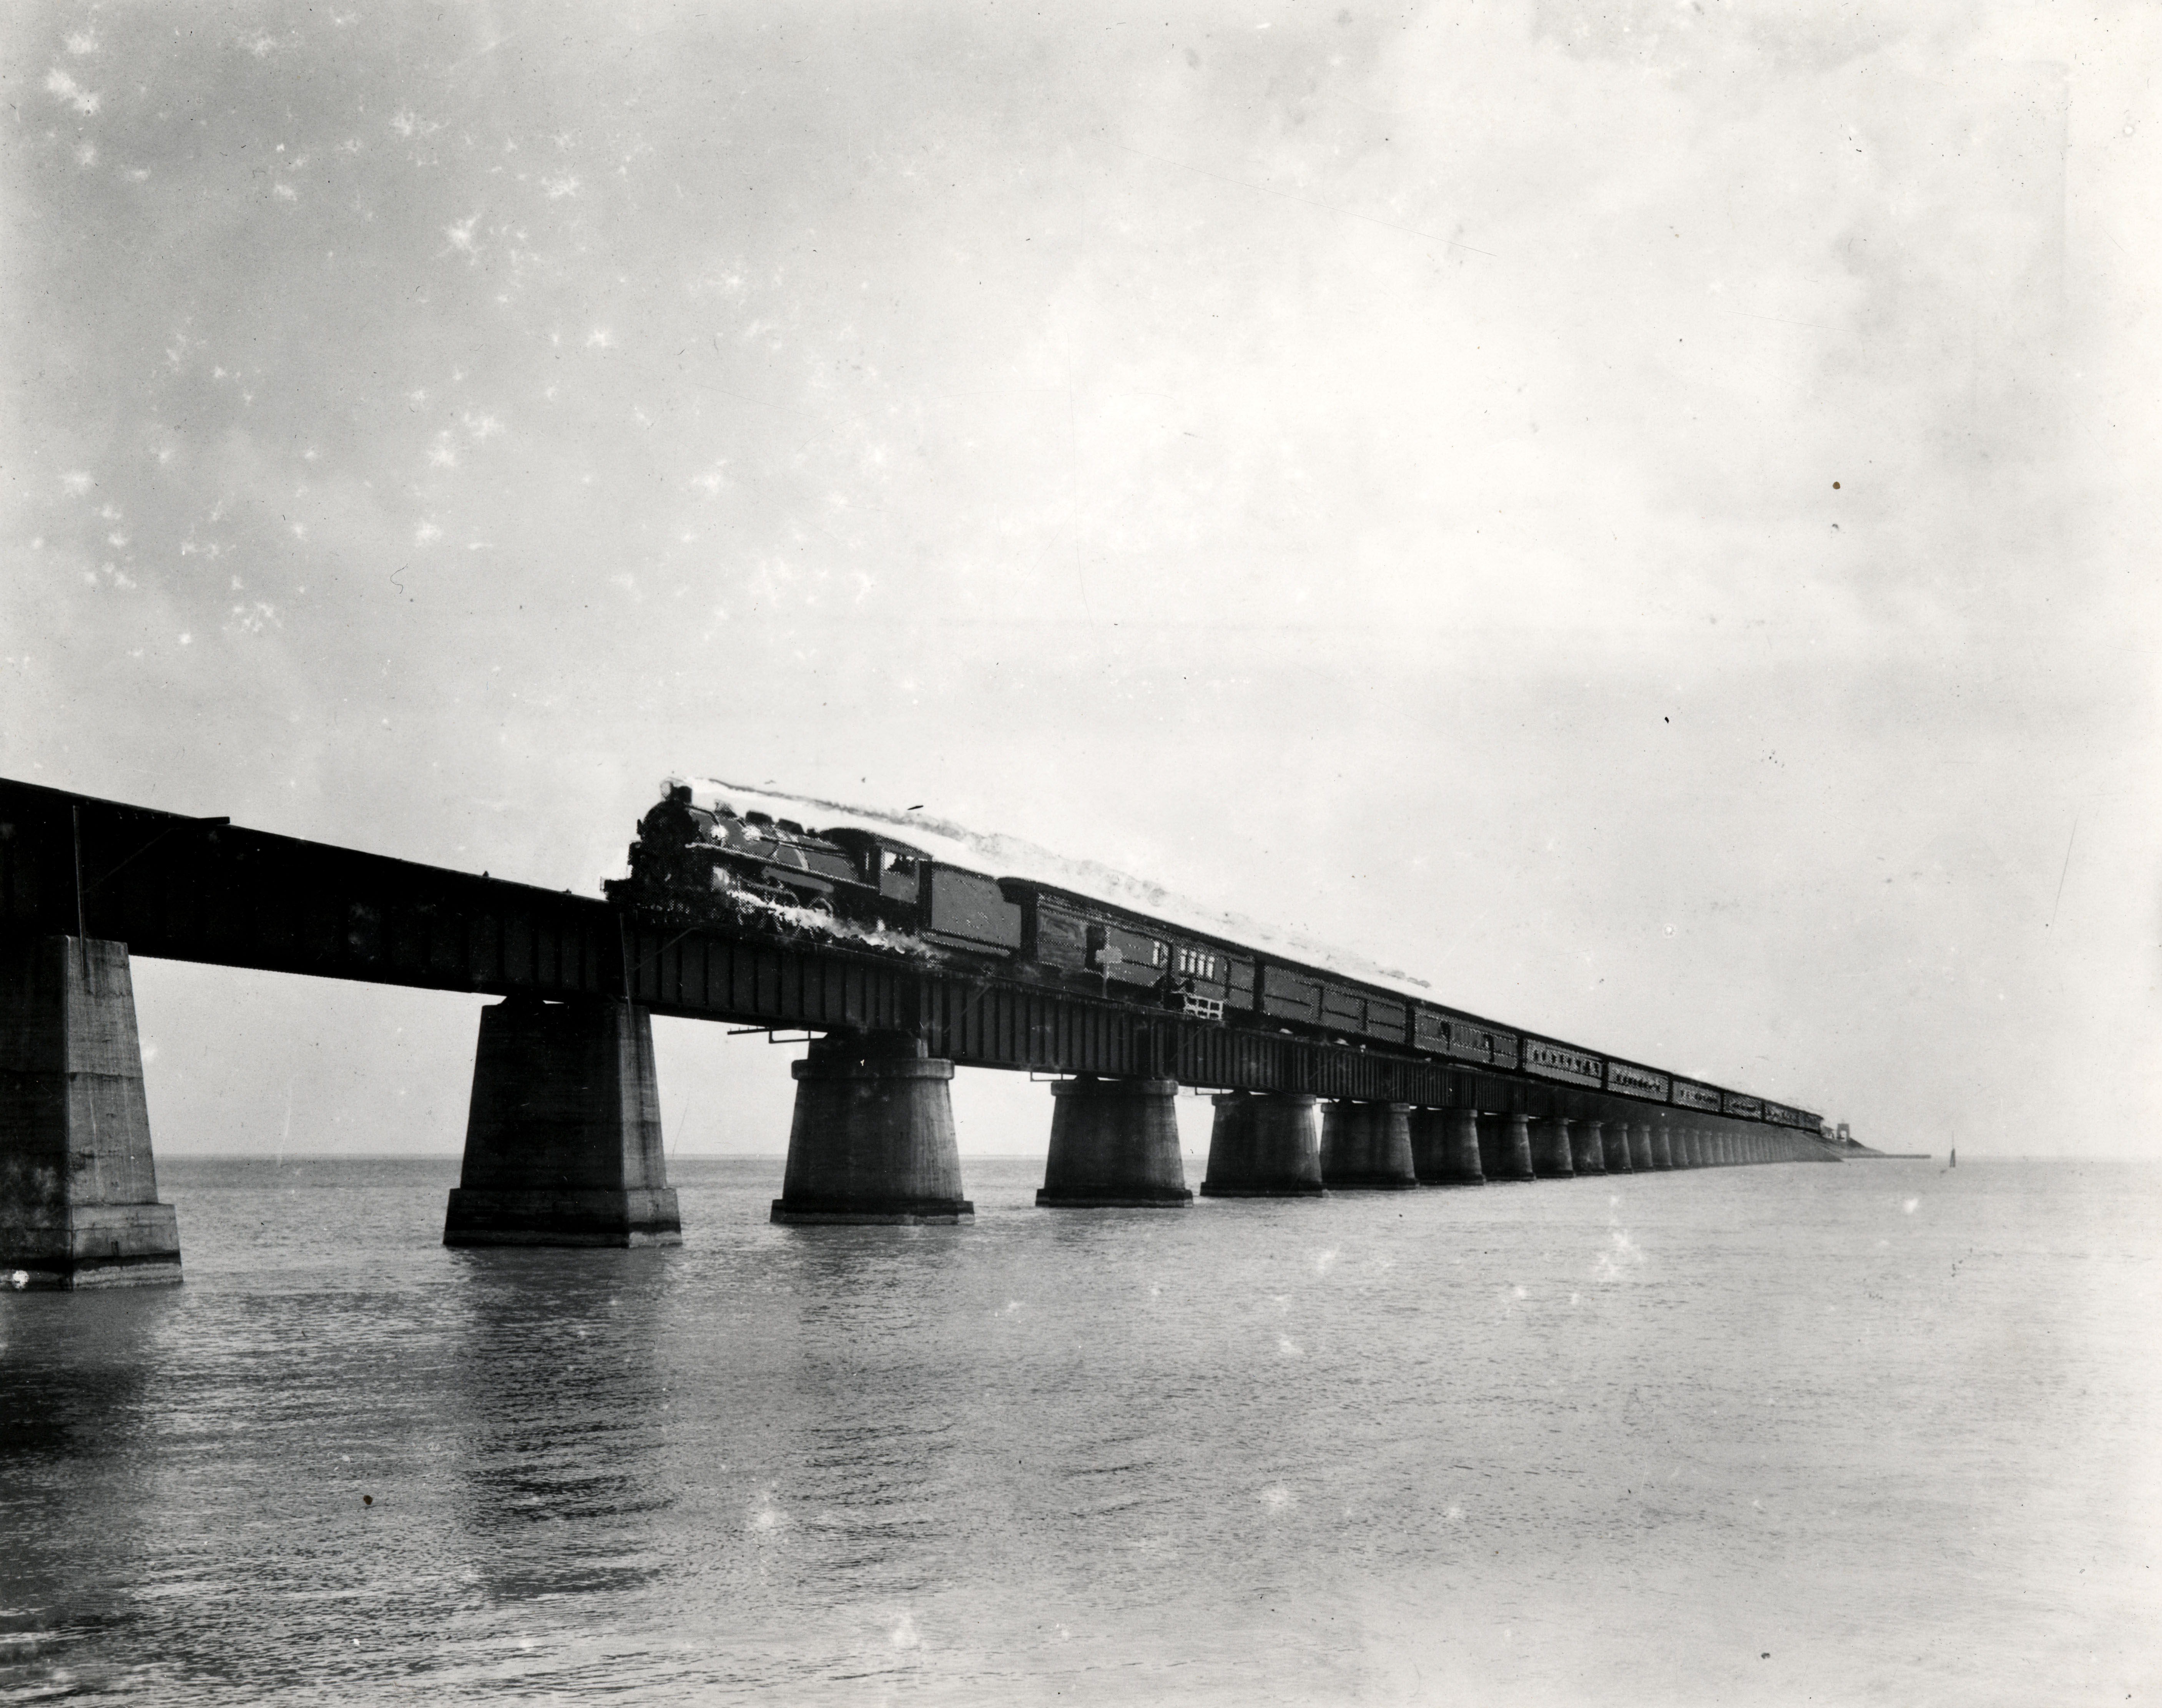 Florida East Coast Railway, Key West Extension. Train on the Seven Mile Bridge. Gift of Ramon Davis. Florida Keys Public Library.